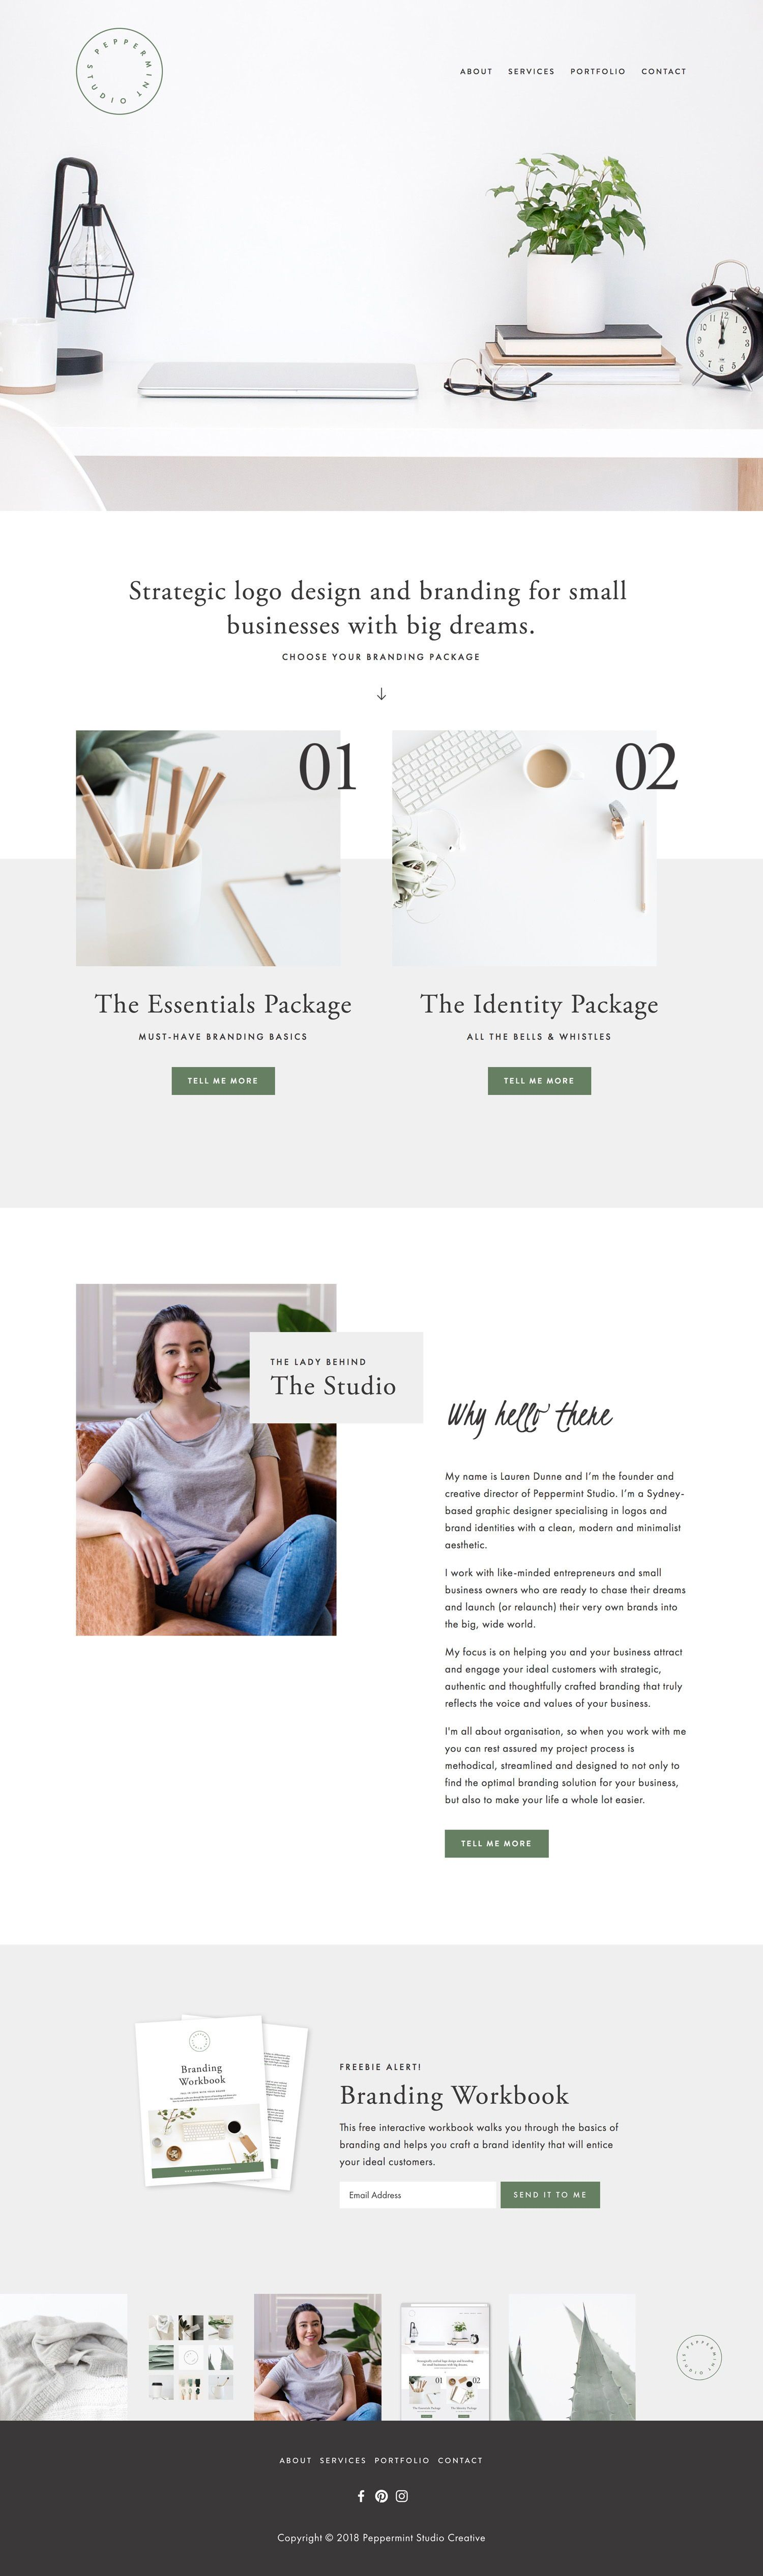 Lady Nomad Squarespace Kit Station Seven Squarespace Templates Wordpress Themes And Free Resources For Creative Entrepreneurs Web Design Projects Website Design Inspiration Web Design